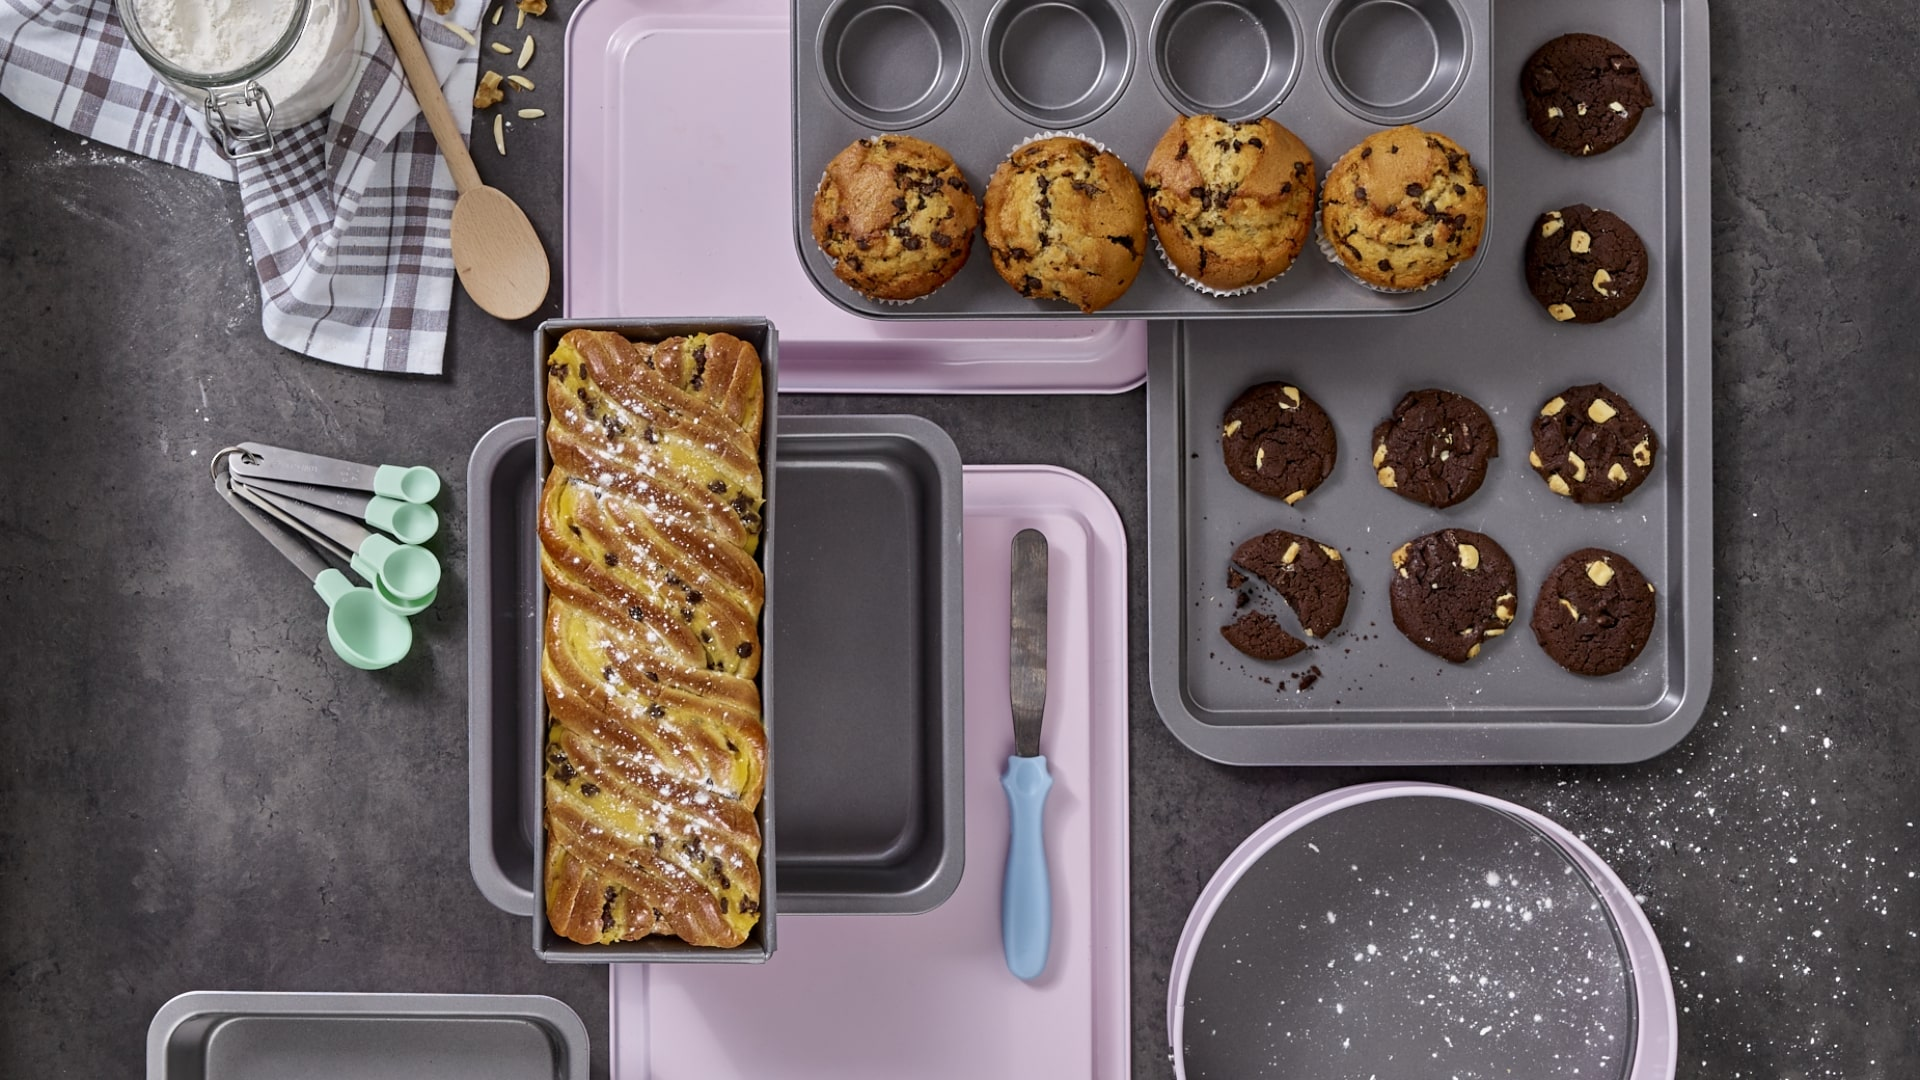 Choosing The Right Baking Tins, Pans & Sheets